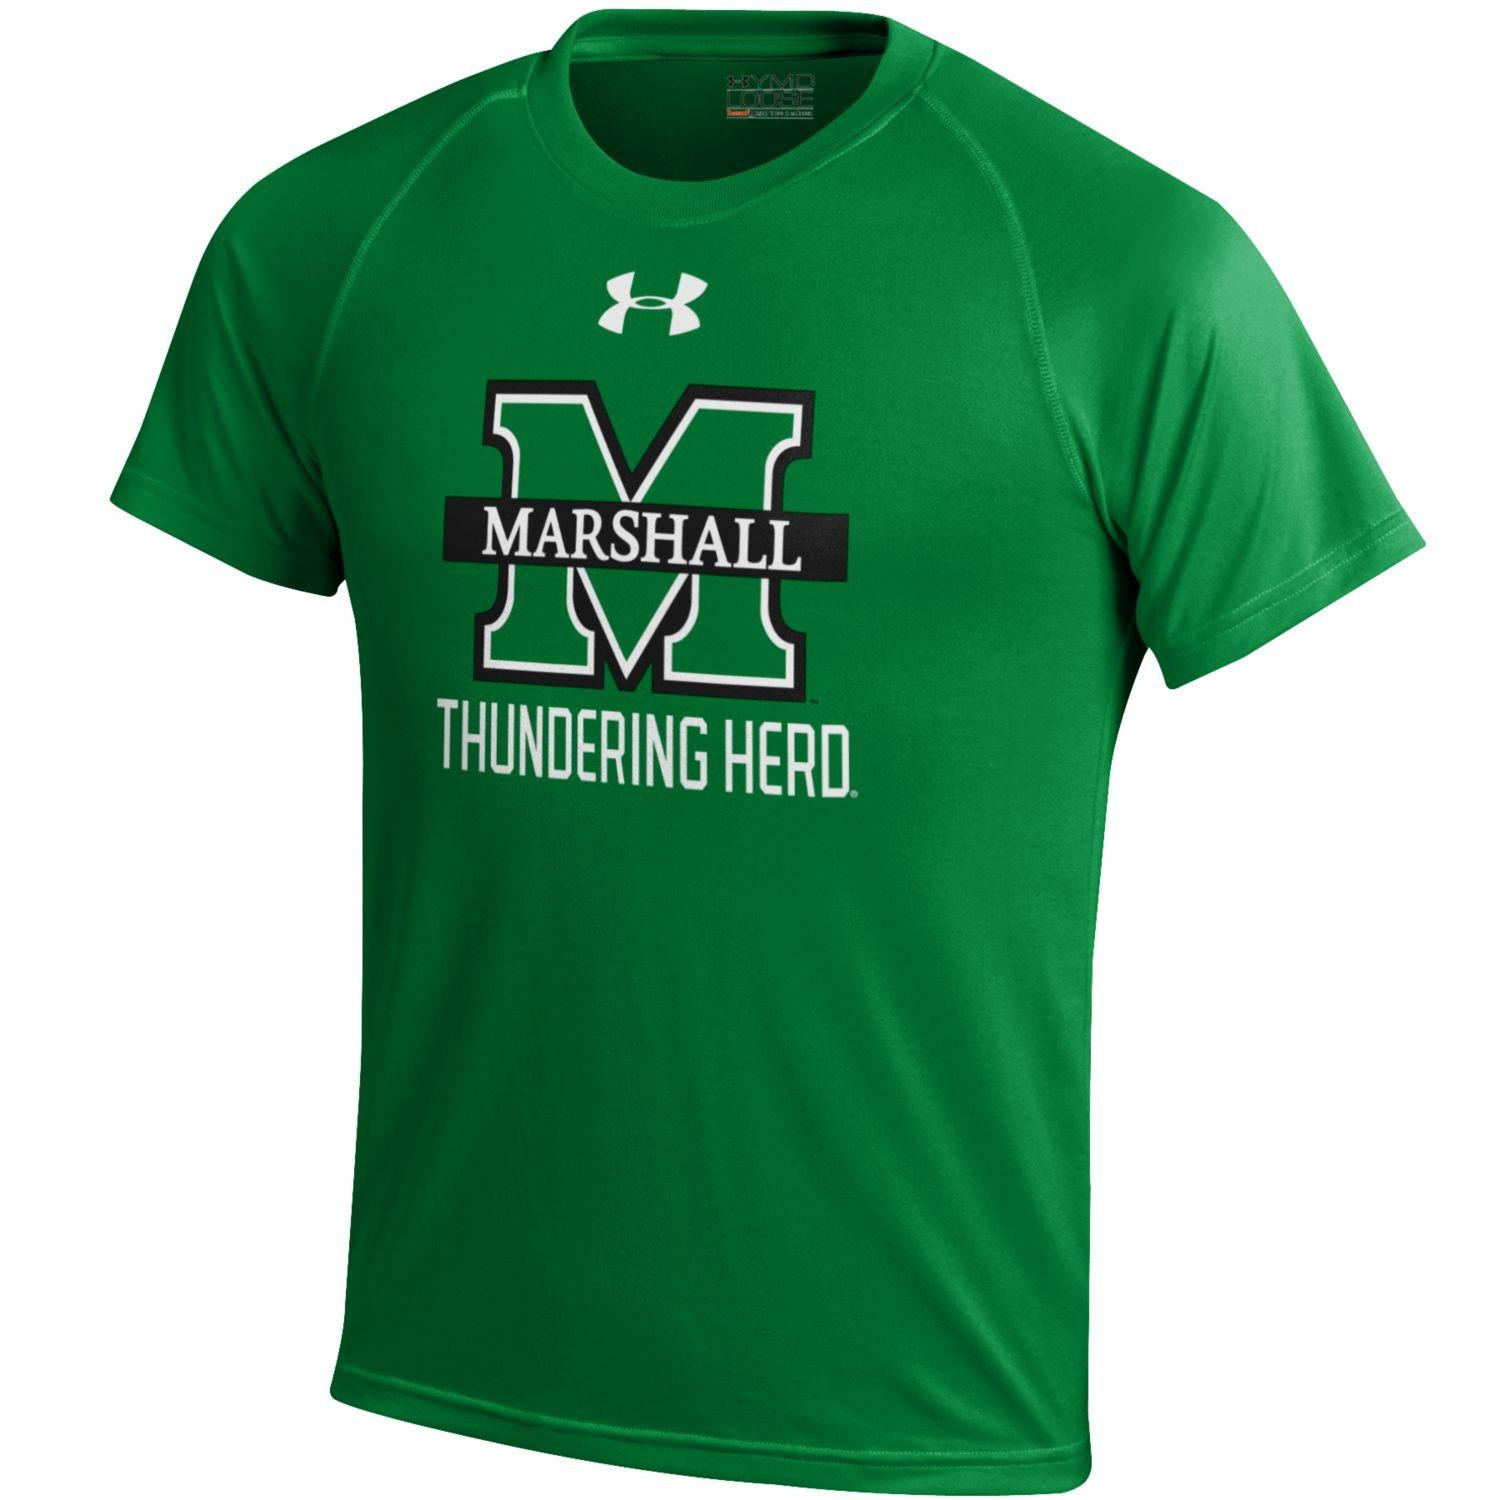 Under Armour  <br>Thundering Herd S/S T-Shirt <br>$29.99